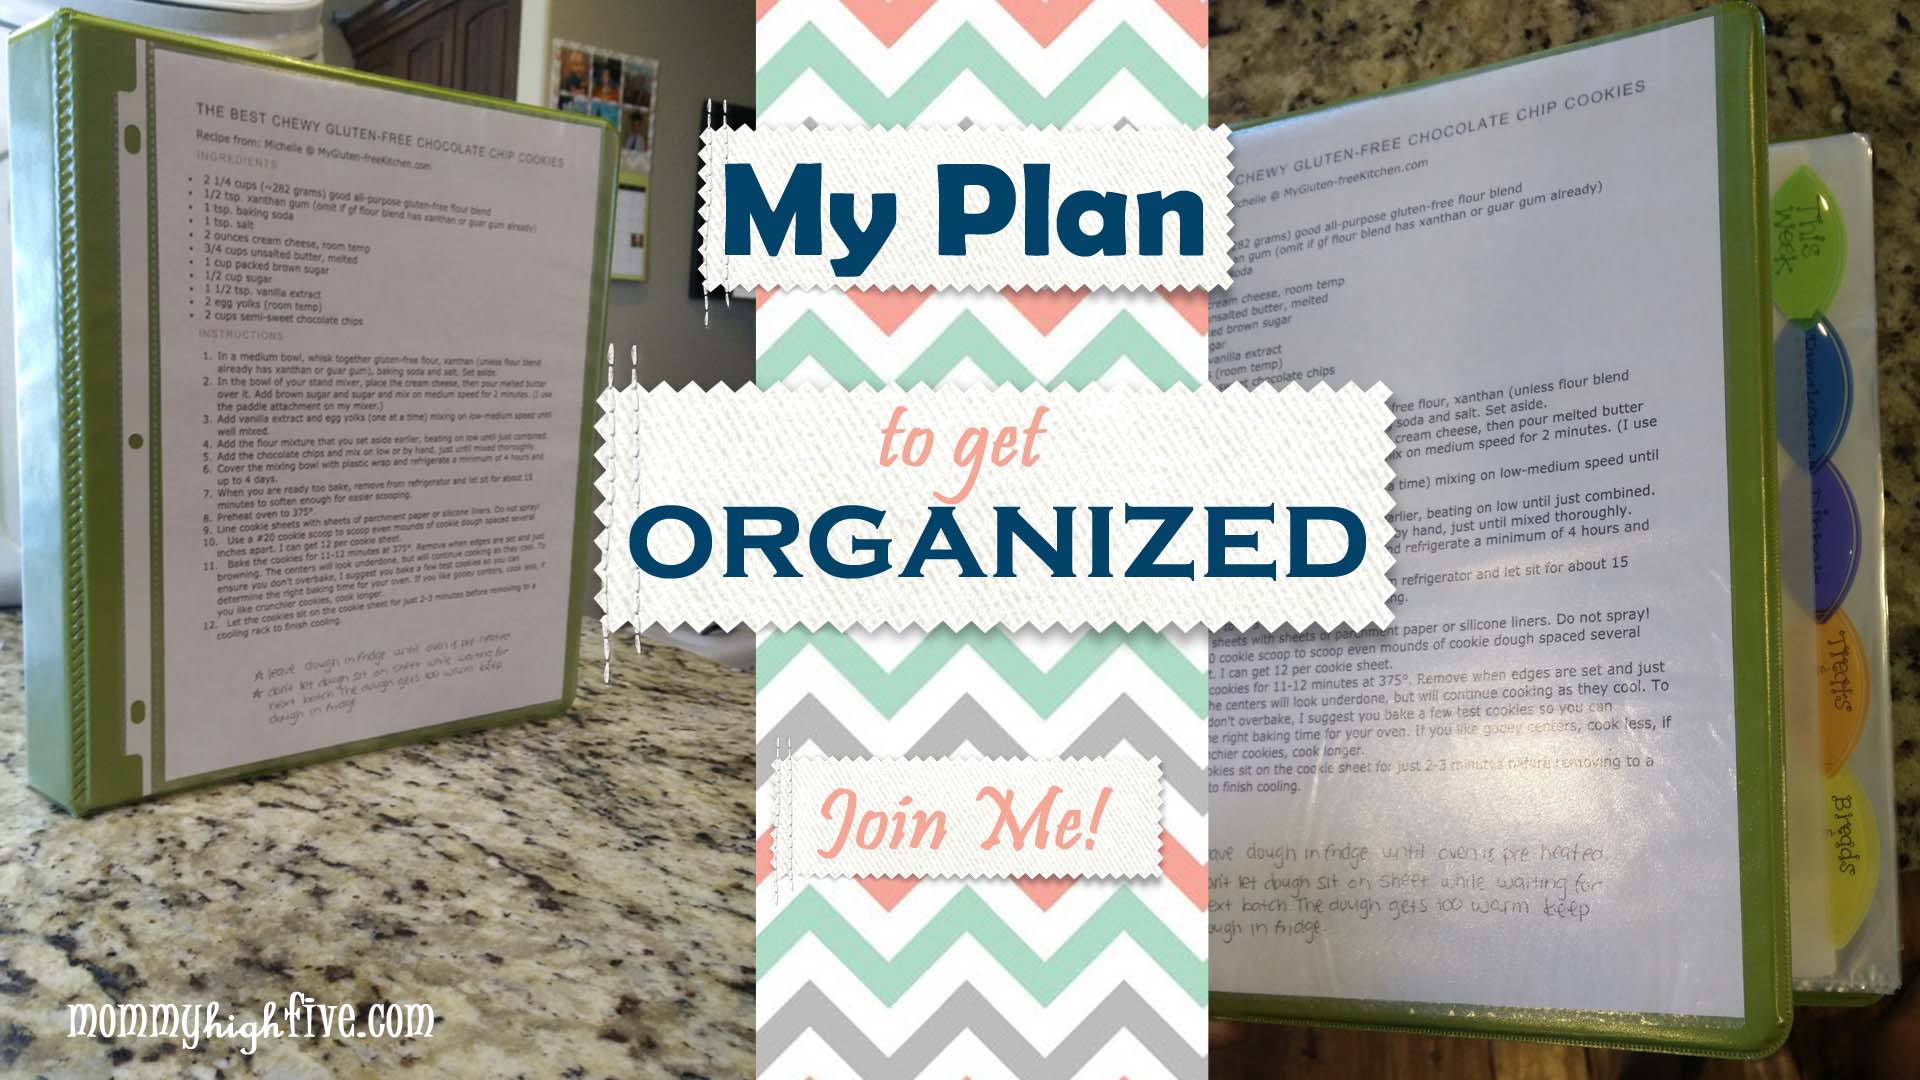 My Gluten-Free Plan to Get Organized